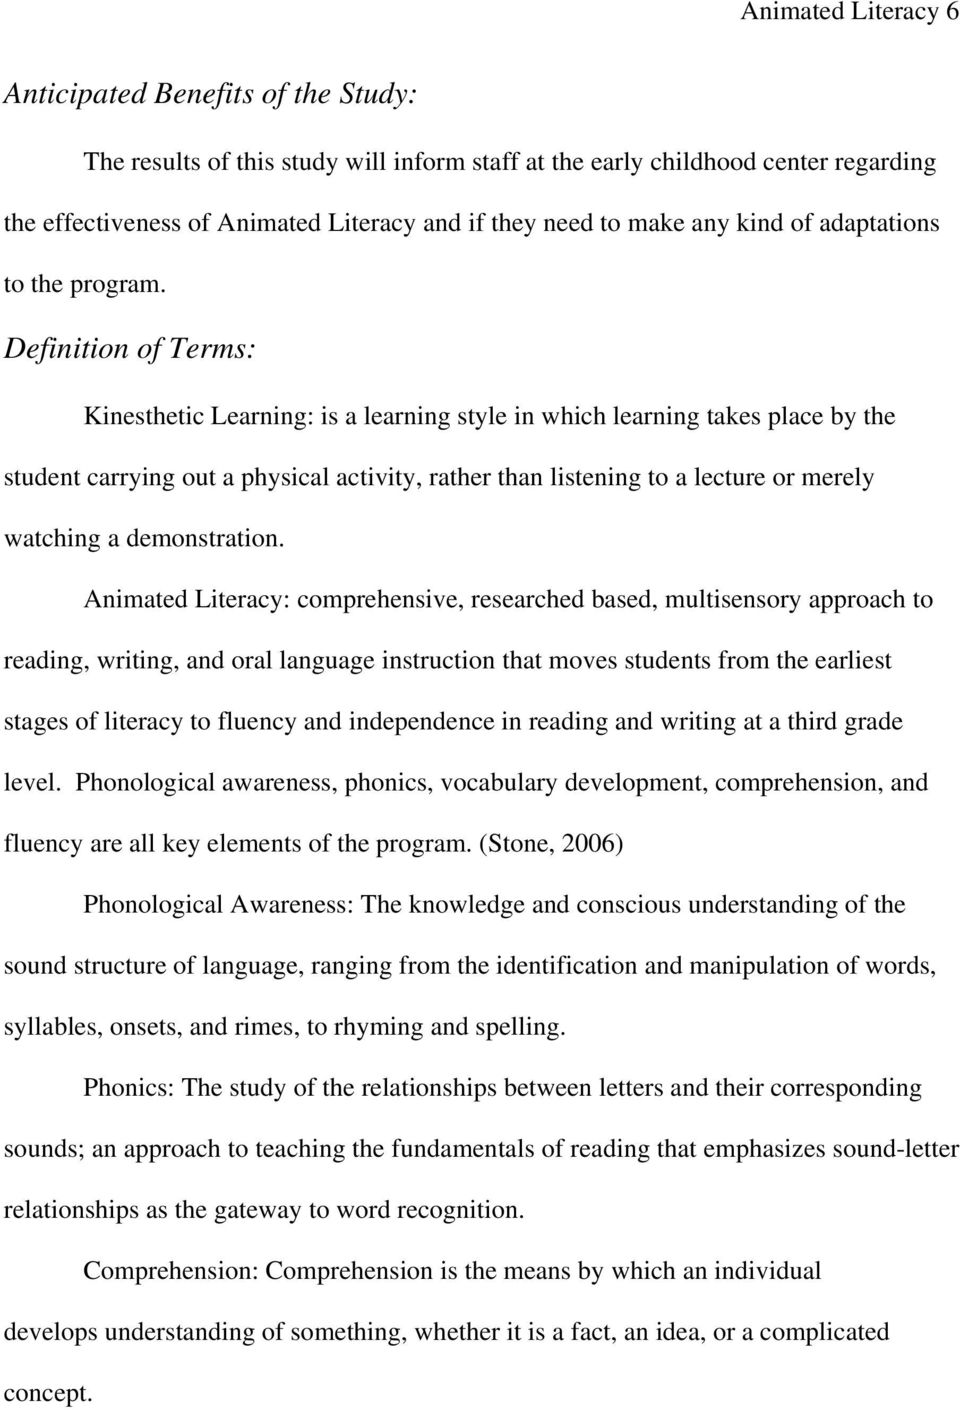 Definition of Terms: Kinesthetic Learning: is a learning style in which learning takes place by the student carrying out a physical activity, rather than listening to a lecture or merely watching a